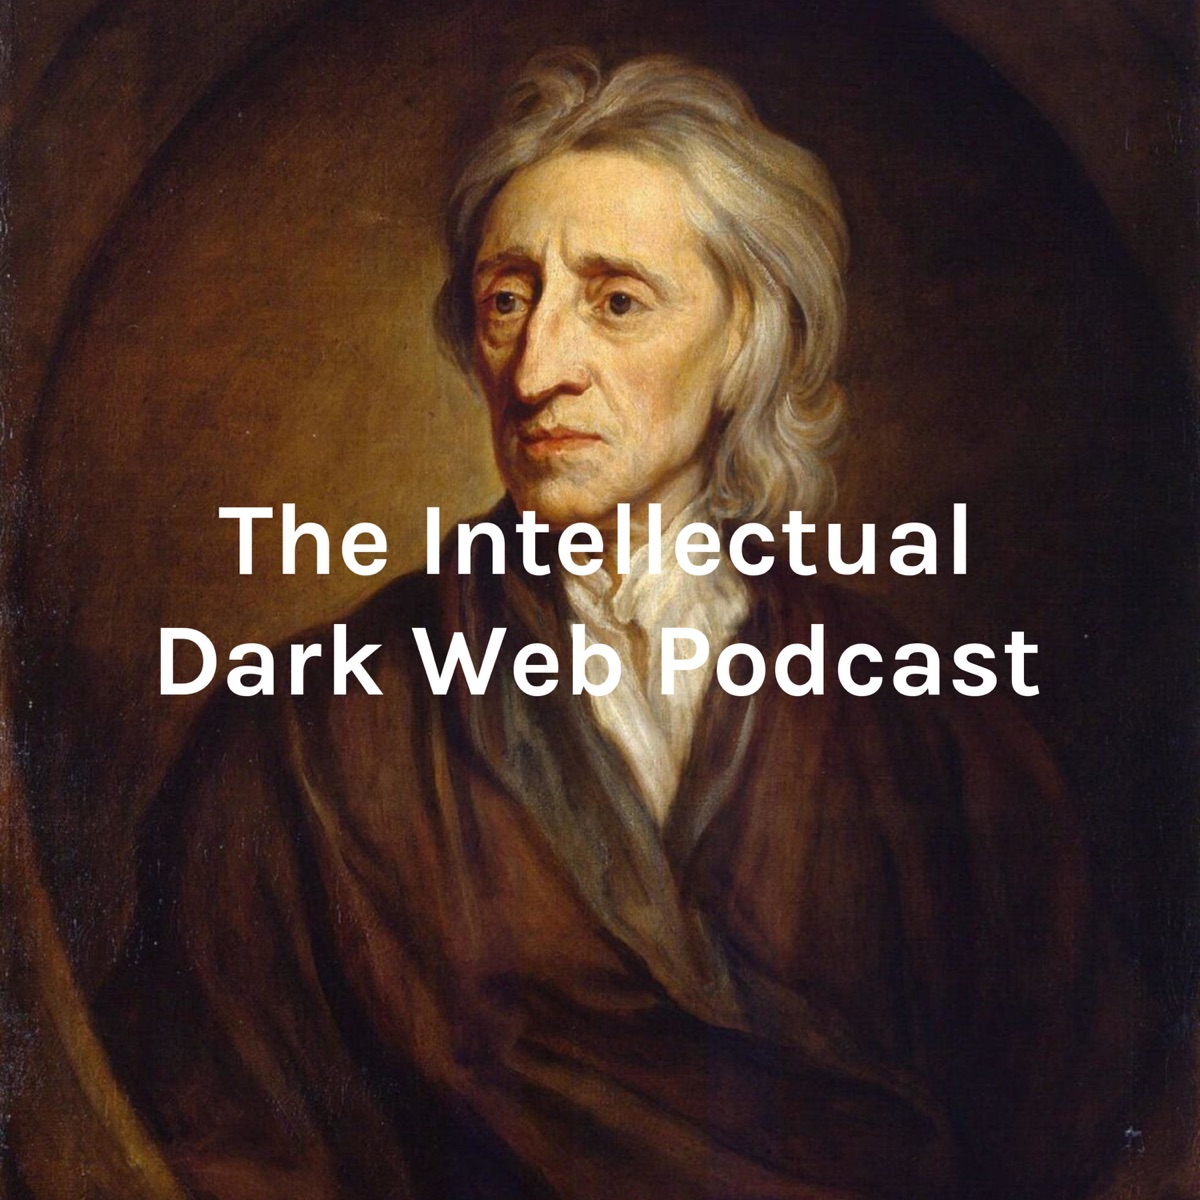 THE INTELLECTUAL DARK WEB PODCAST (Hobbes + Locke + US Constitution in ONE BOOK for 14.95$)